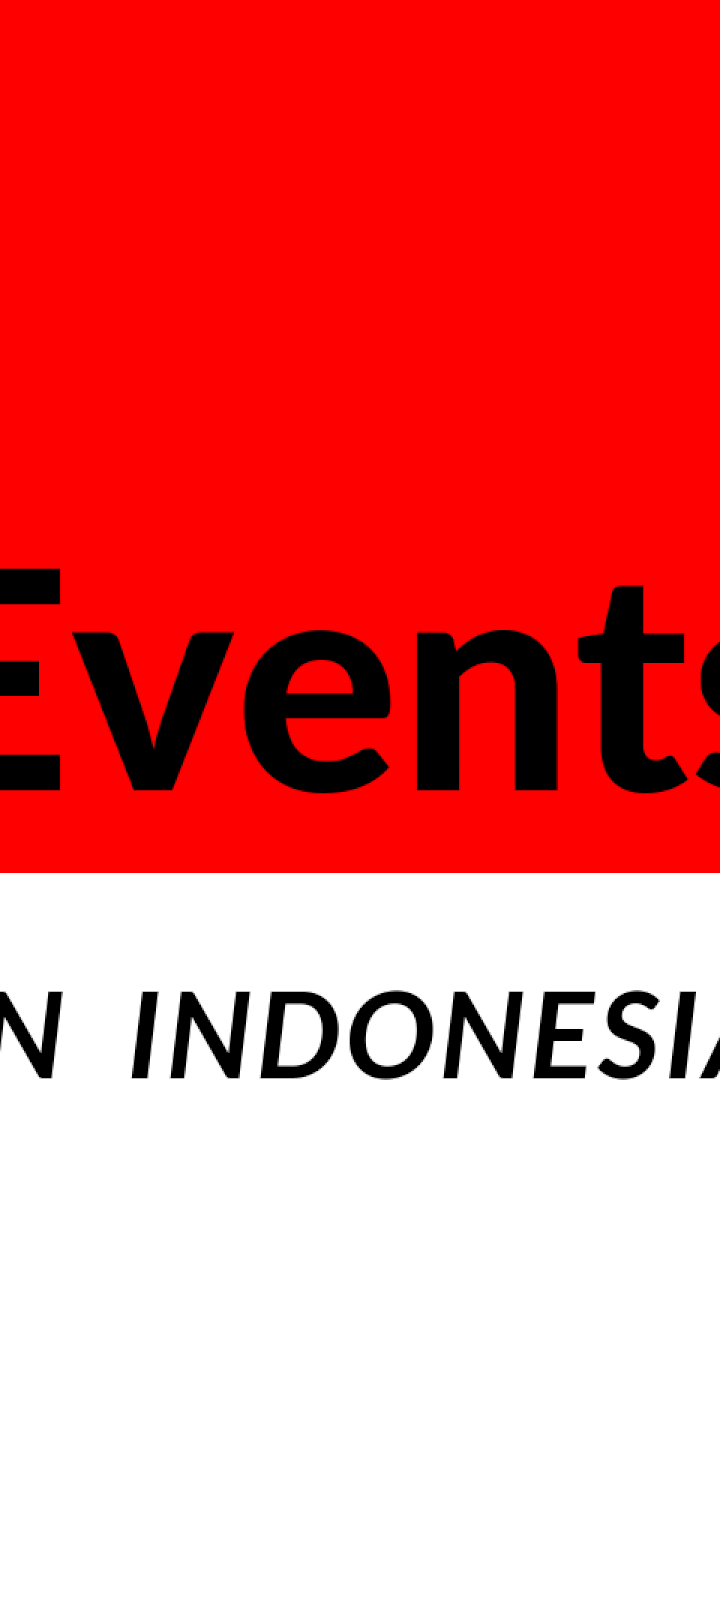 Events in Indonesia